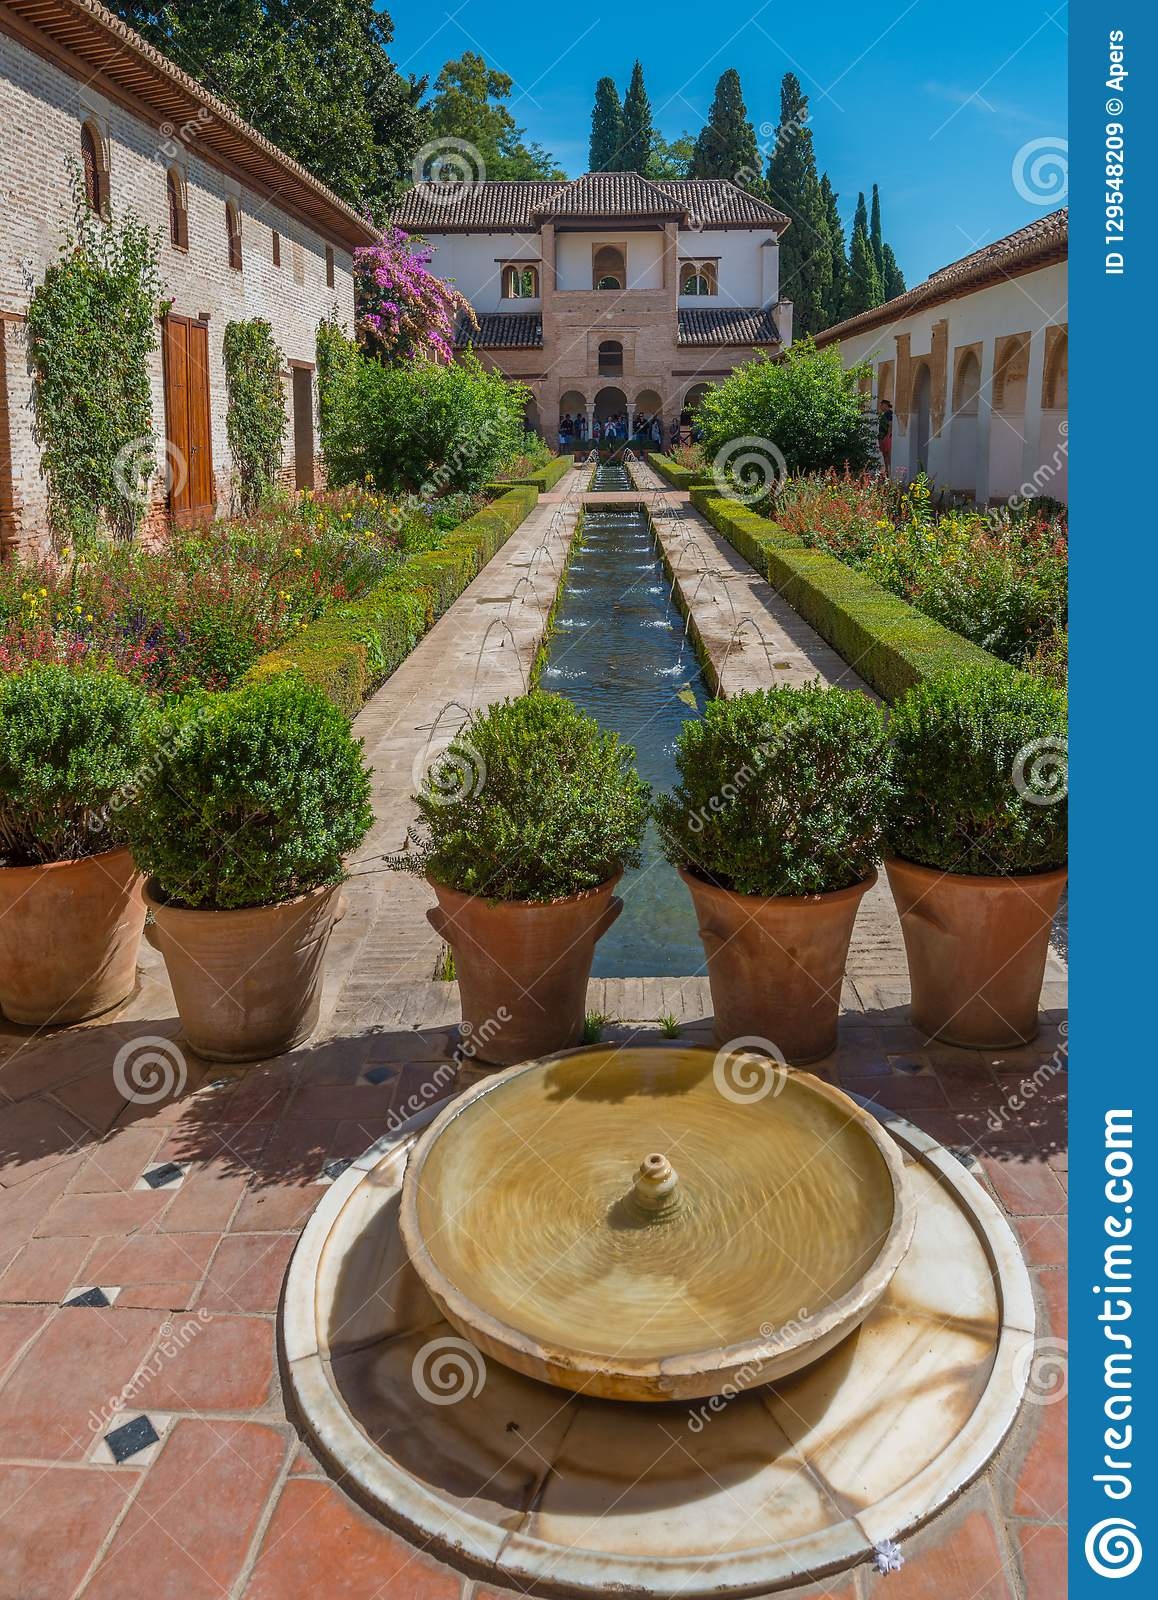 Patio of the irrigation ditch of Generalife, Alhambra